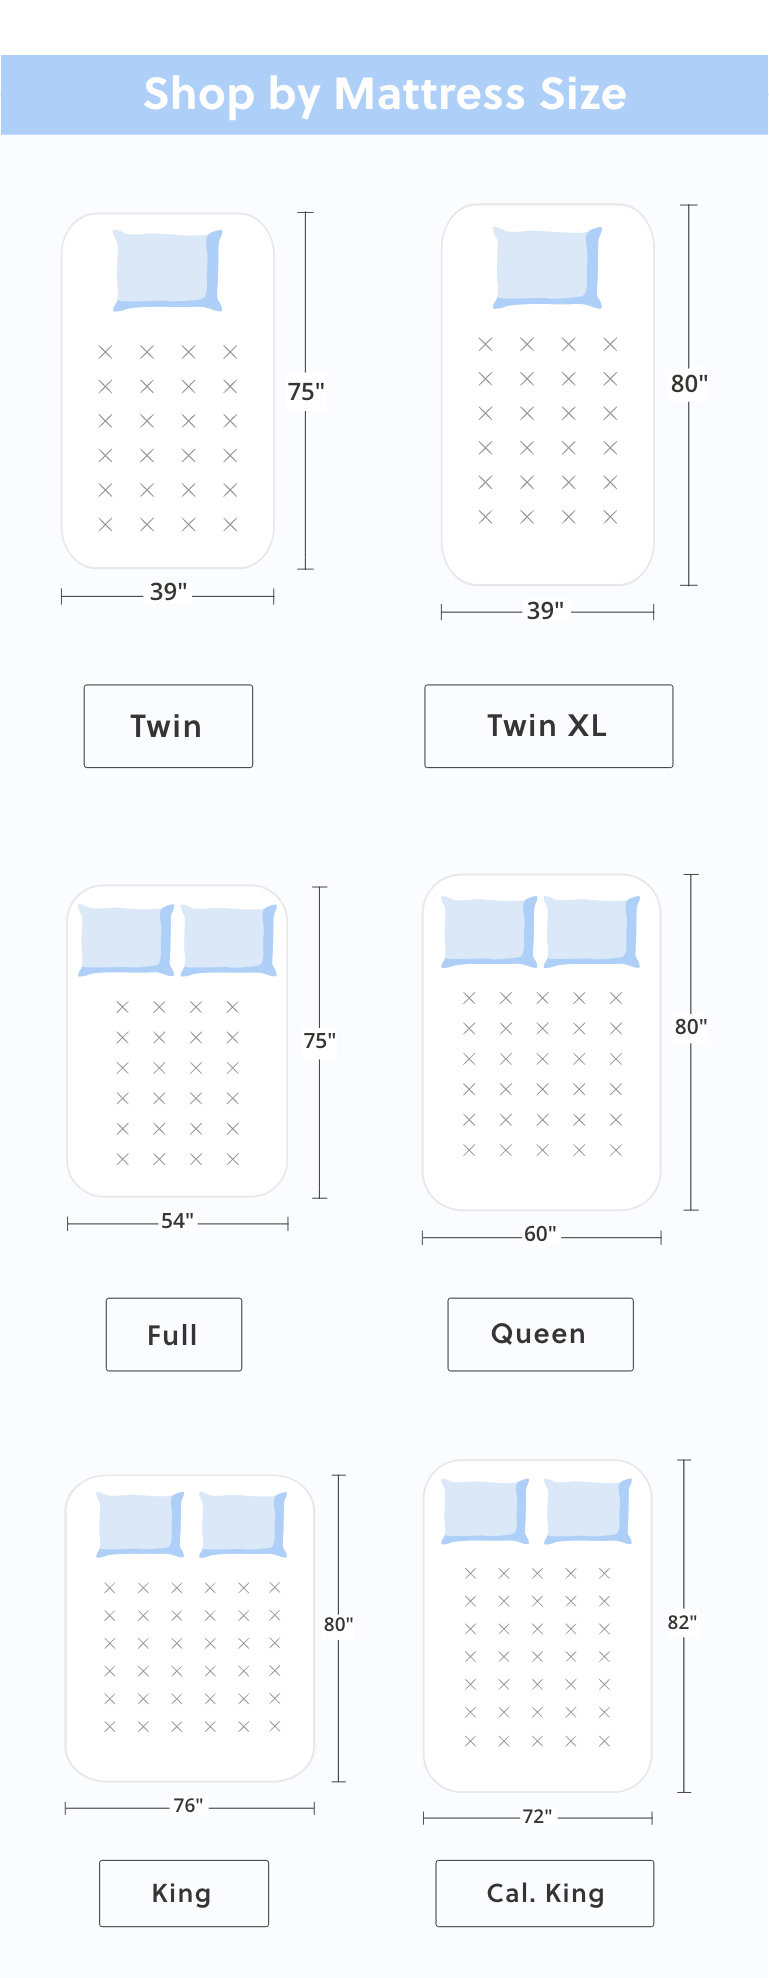 Twin Mattress, Twin XL Mattress, Full Mattress, Queen Mattress, King Mattress, California King Mattress